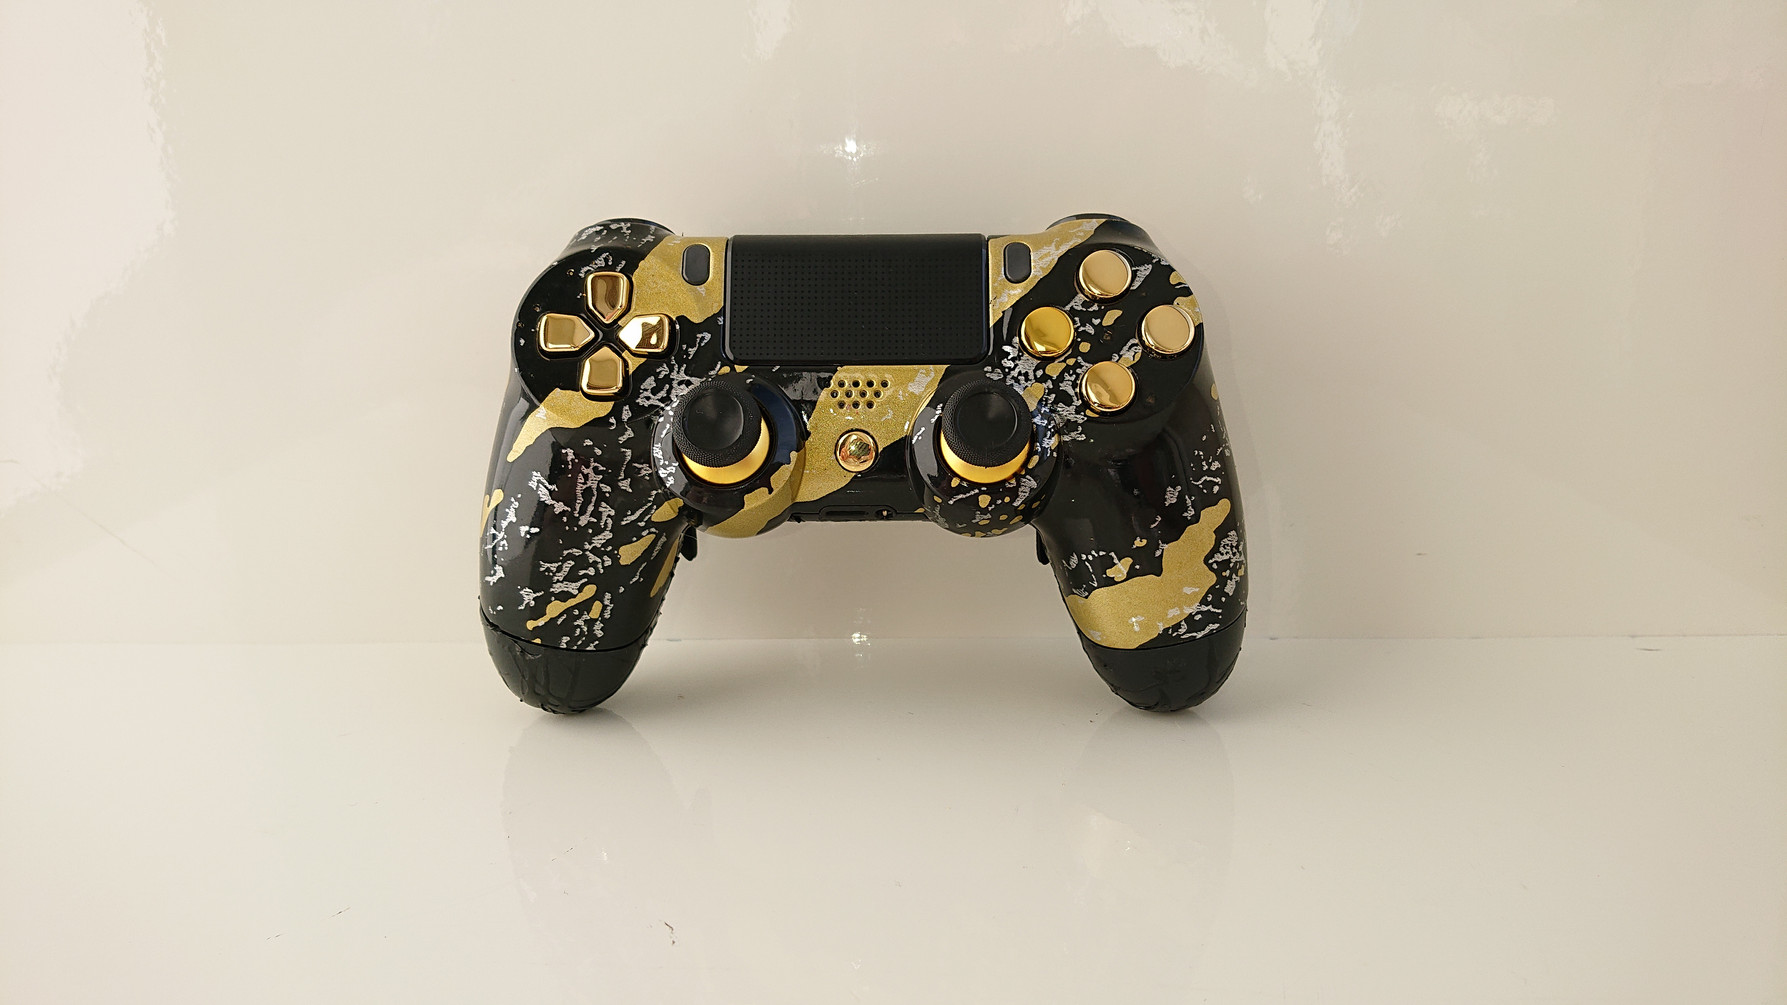 Camoflage Elite Gold